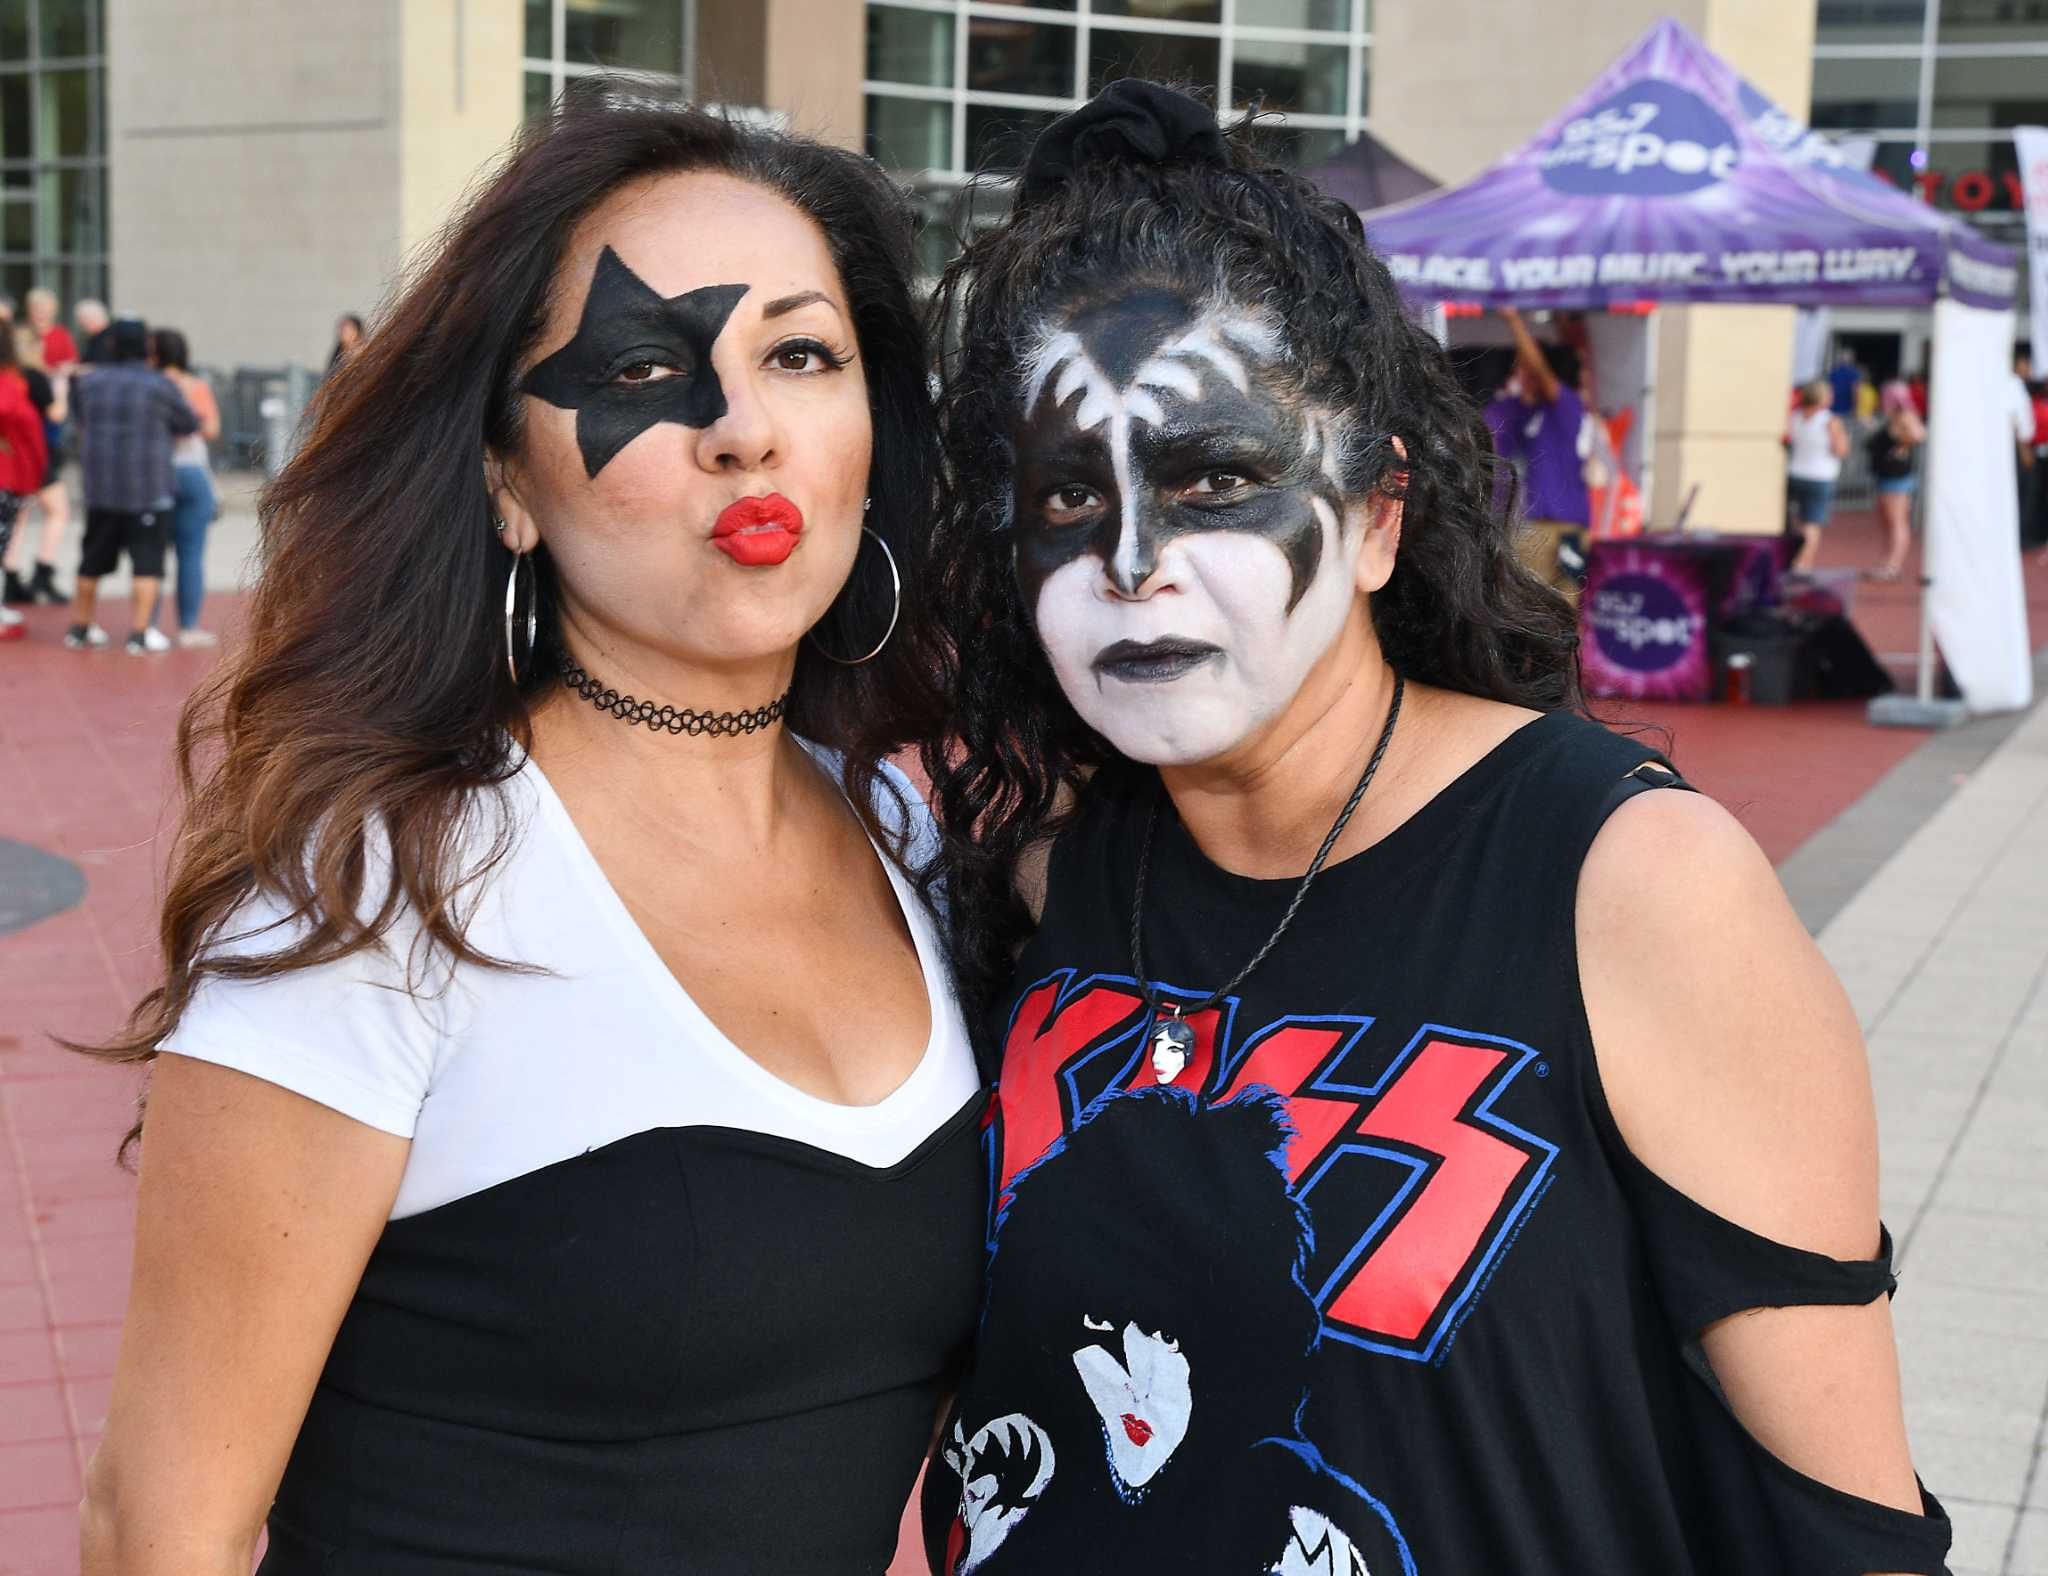 KISS faithful turn out for band's farewell tour